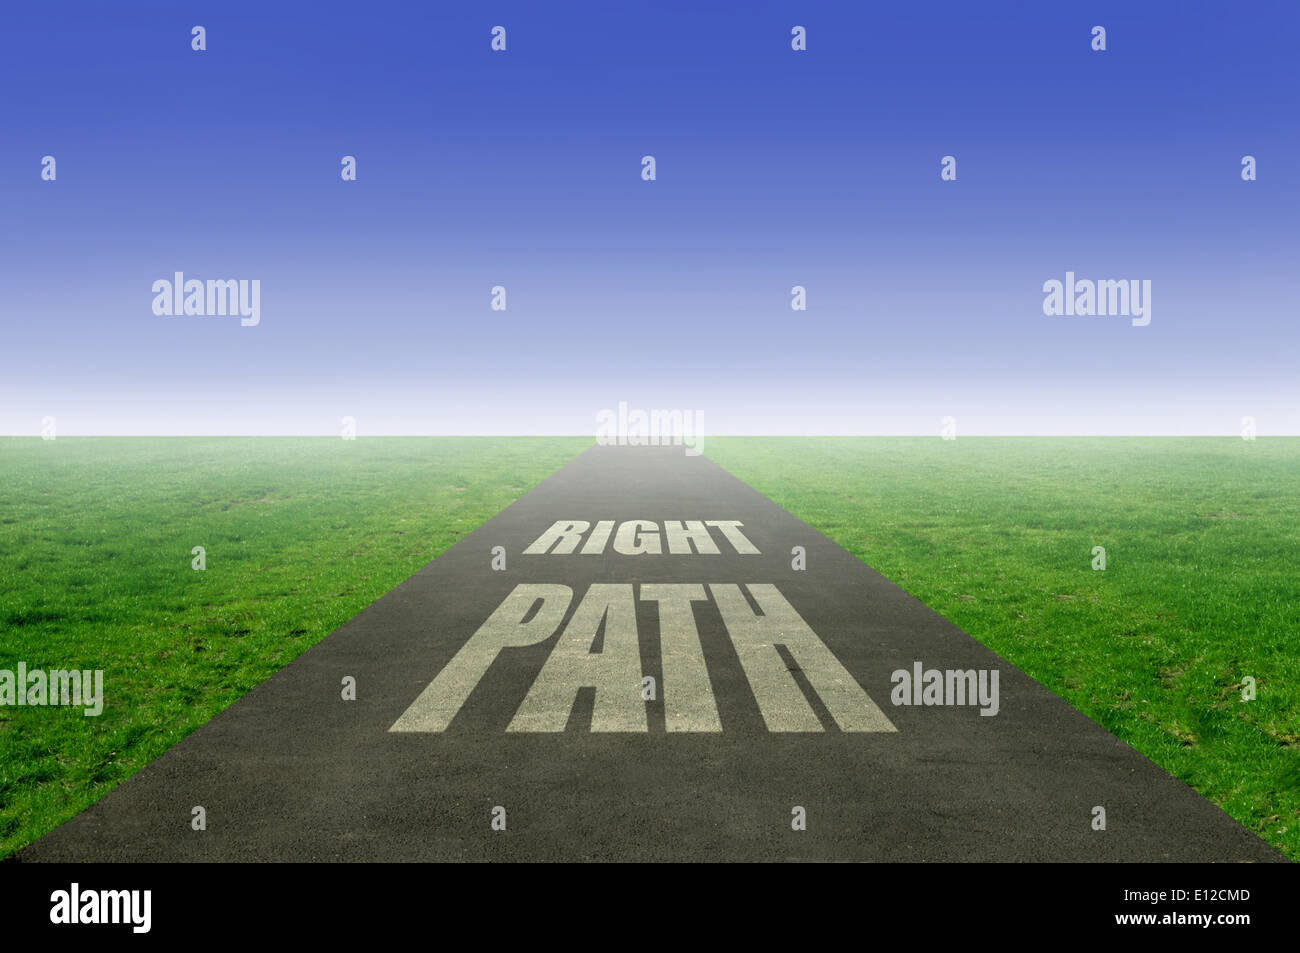 Follow the right path - Stock Image